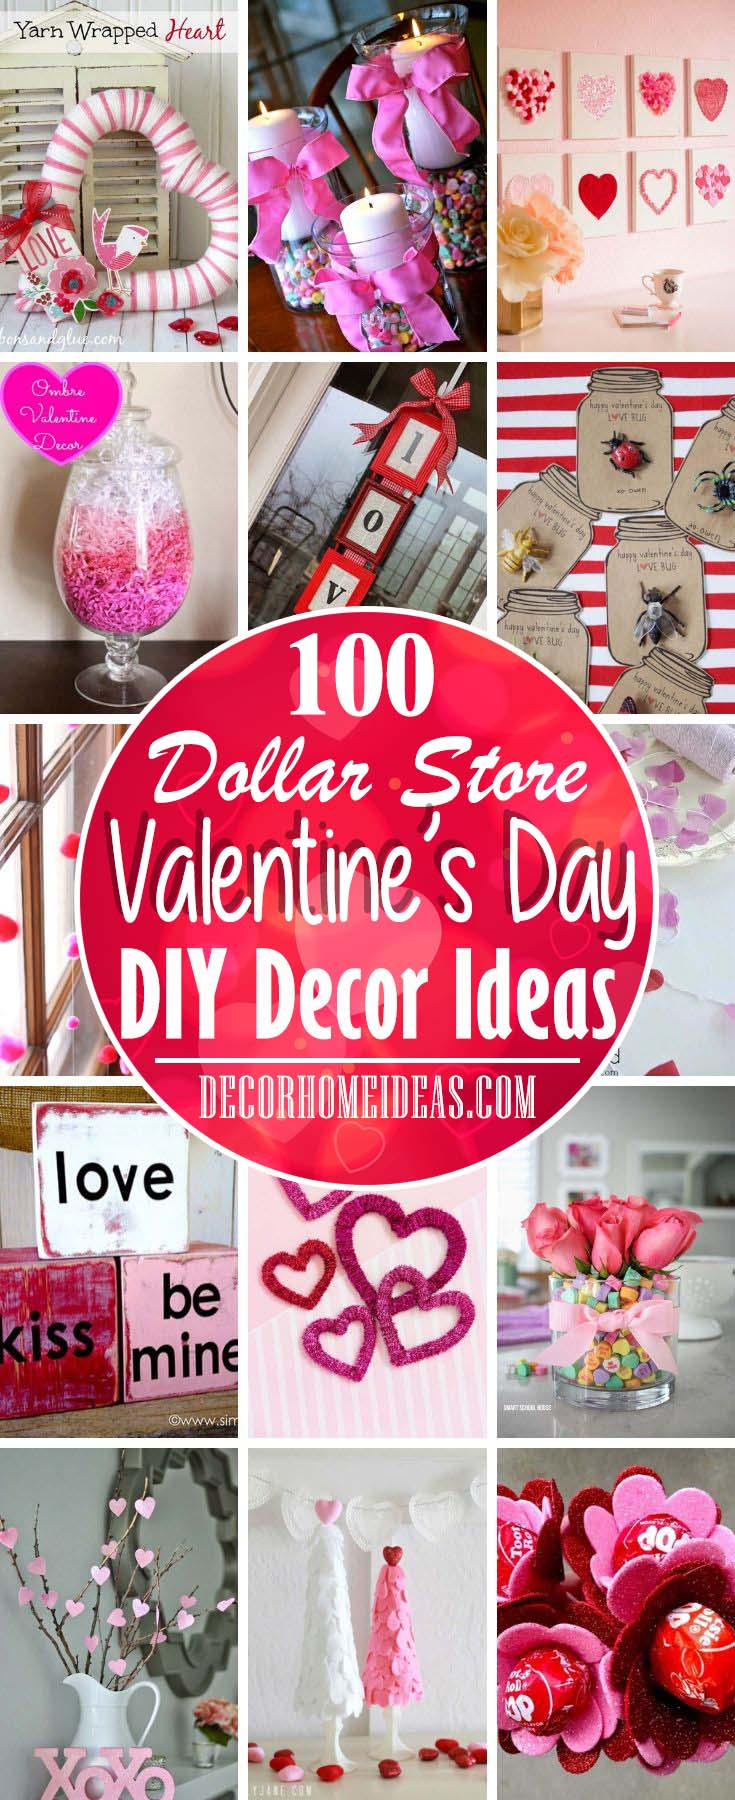 Dollar Store DIY Valentines Day Decorations #diy #valentines #decor #decorhomeideas